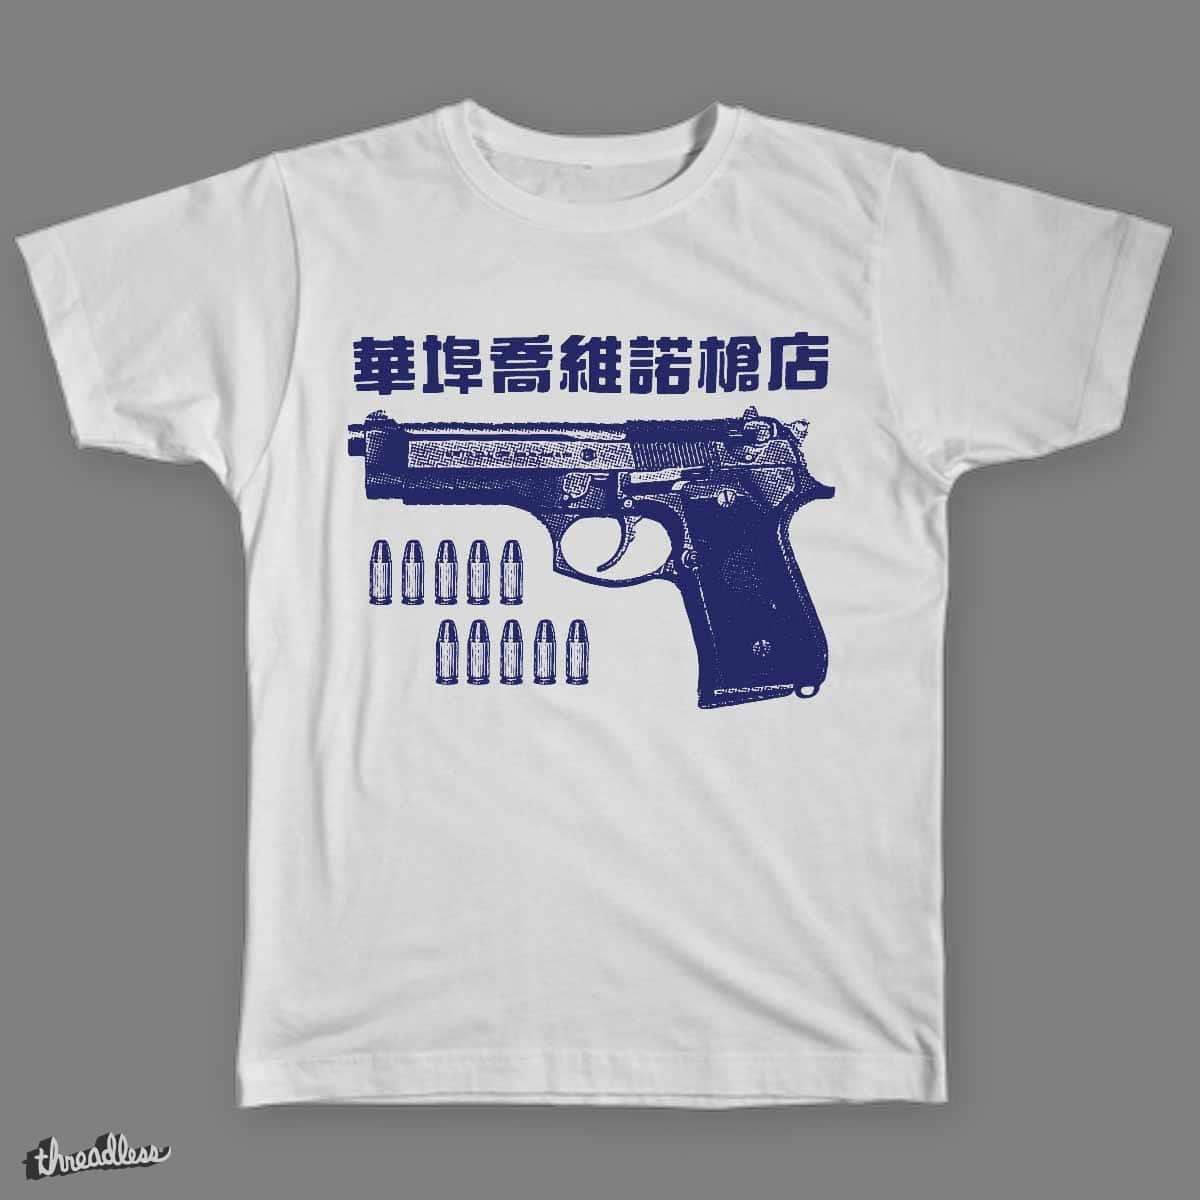 Chinatown 9mm by explodingsky on Threadless